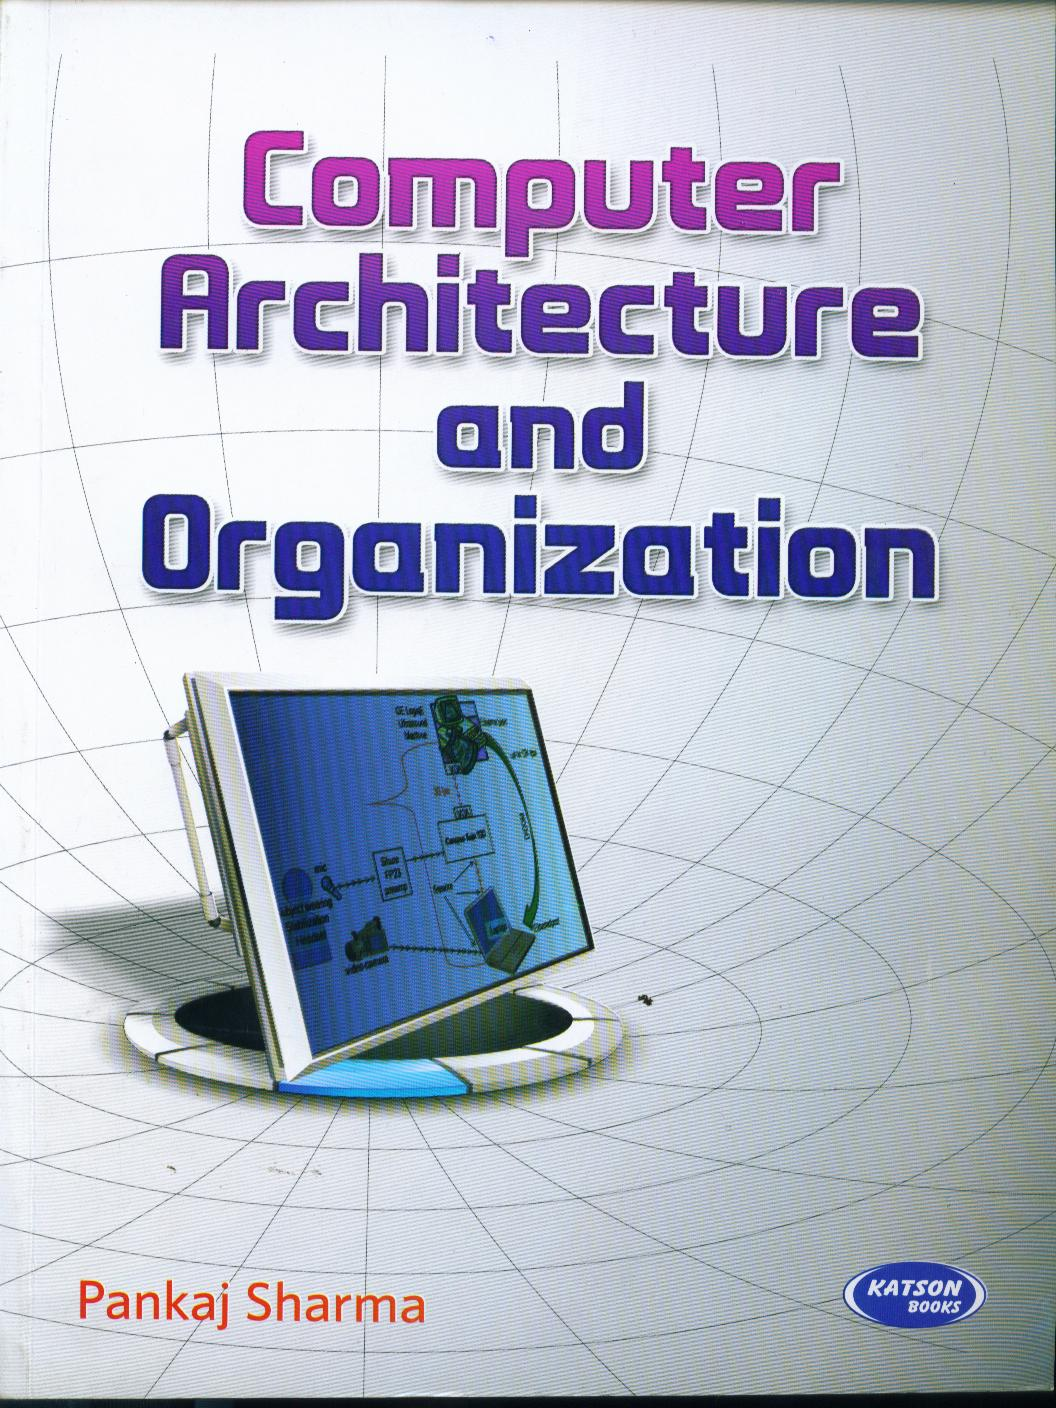 computer architecture and organization research papers A new direction for computer architecture research as a worthy new direction for computer architecture for most papers in the special issue.